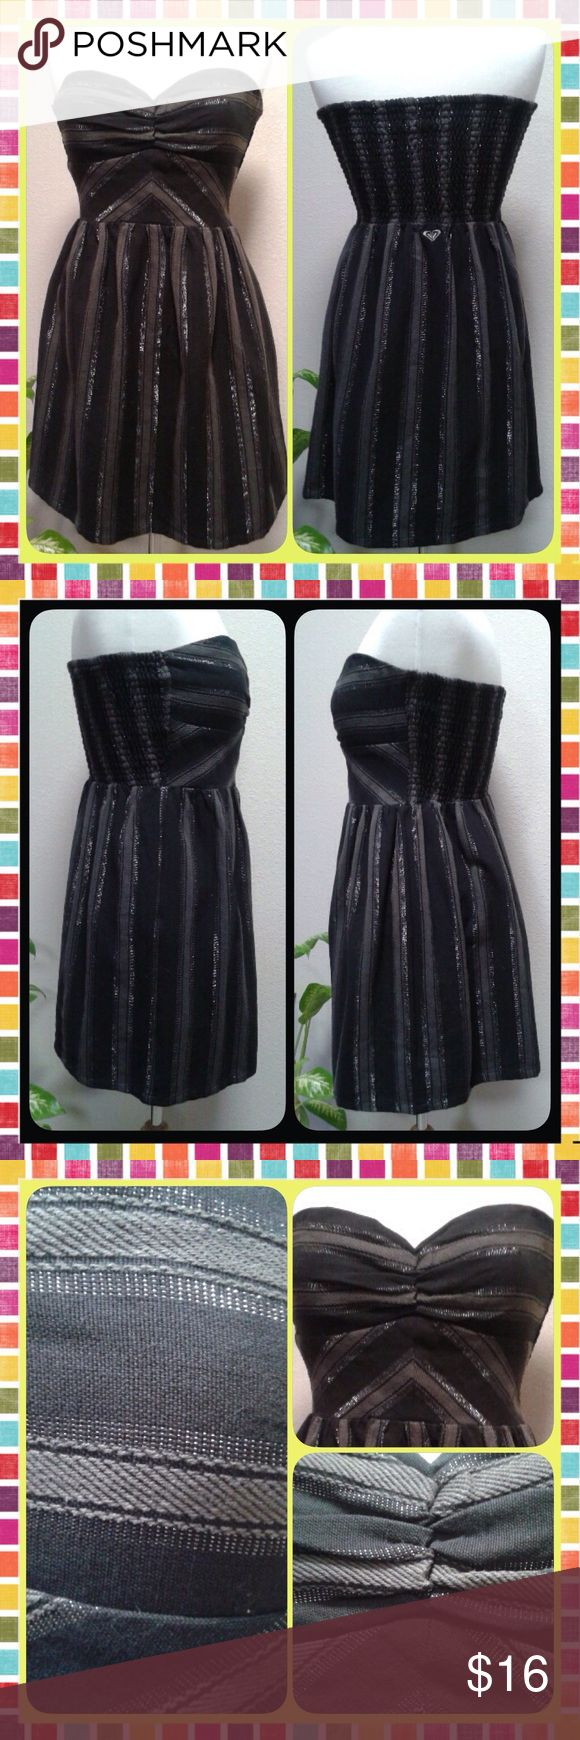 """Black & Silver Sweetheart Dress Great, little dress by Roxy.  Medium weight/denim-like fabric in dark charcoal/gray stripes, woven with silver thread.  Perfect for Girls Night Out or Date Night.  Sweetheart strapless neckline, stretch smocked back provides support, flattering waistline.  Junior Large, Measures: Chest (armpit to armpit) 16""""   Length (top of chest to hem) 25""""   Waist (seam to seam) 16"""". Like New, worn a couple of times, no defects. Roxy Dresses"""